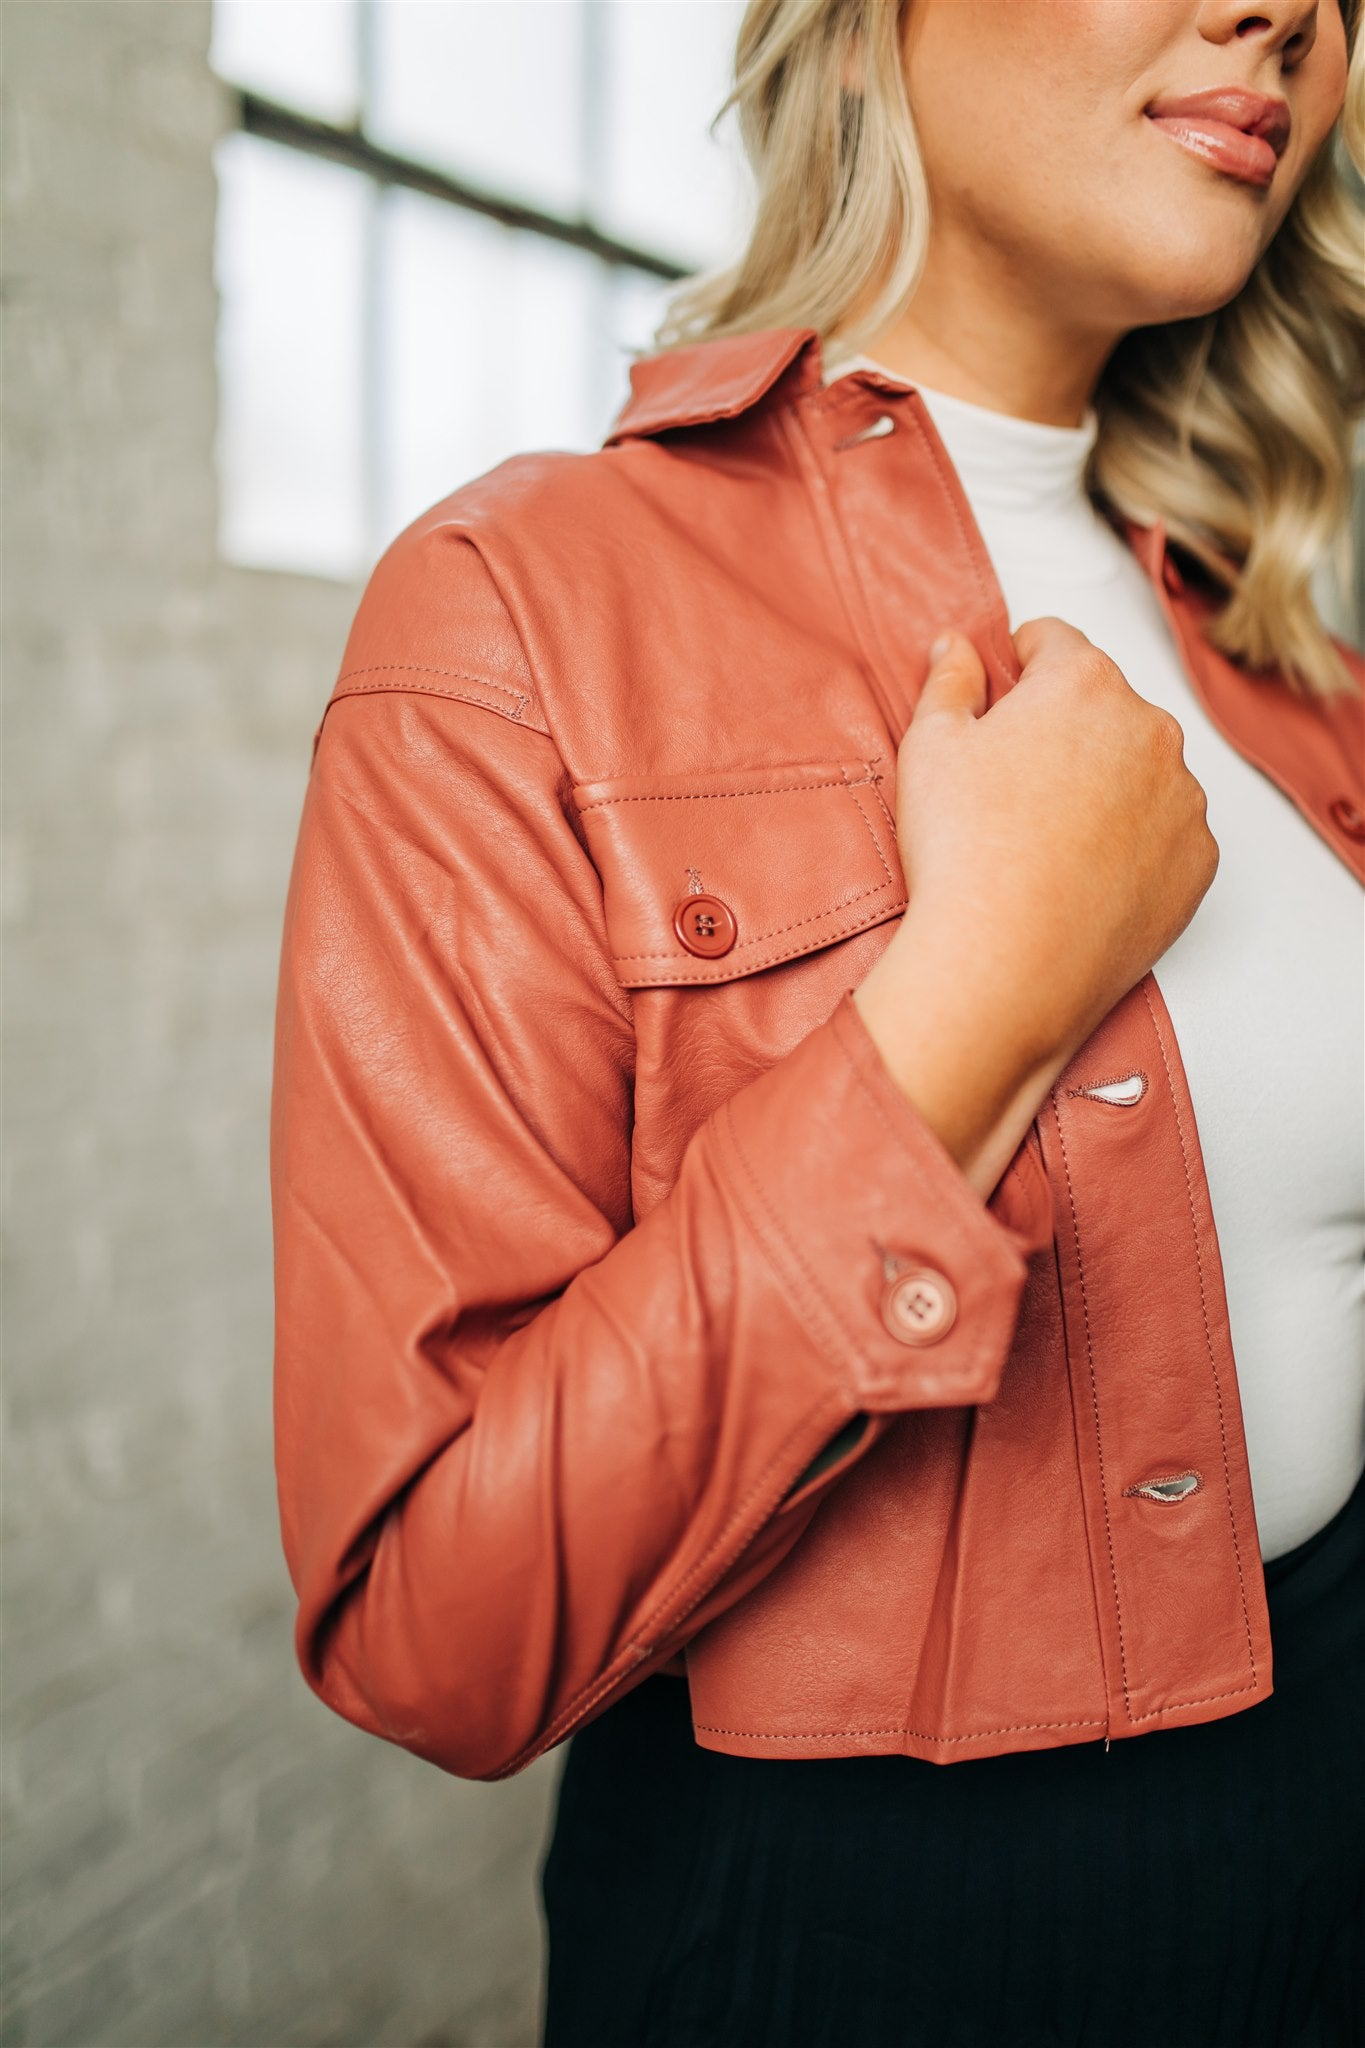 Peachy Keen Faux Leather Jacket